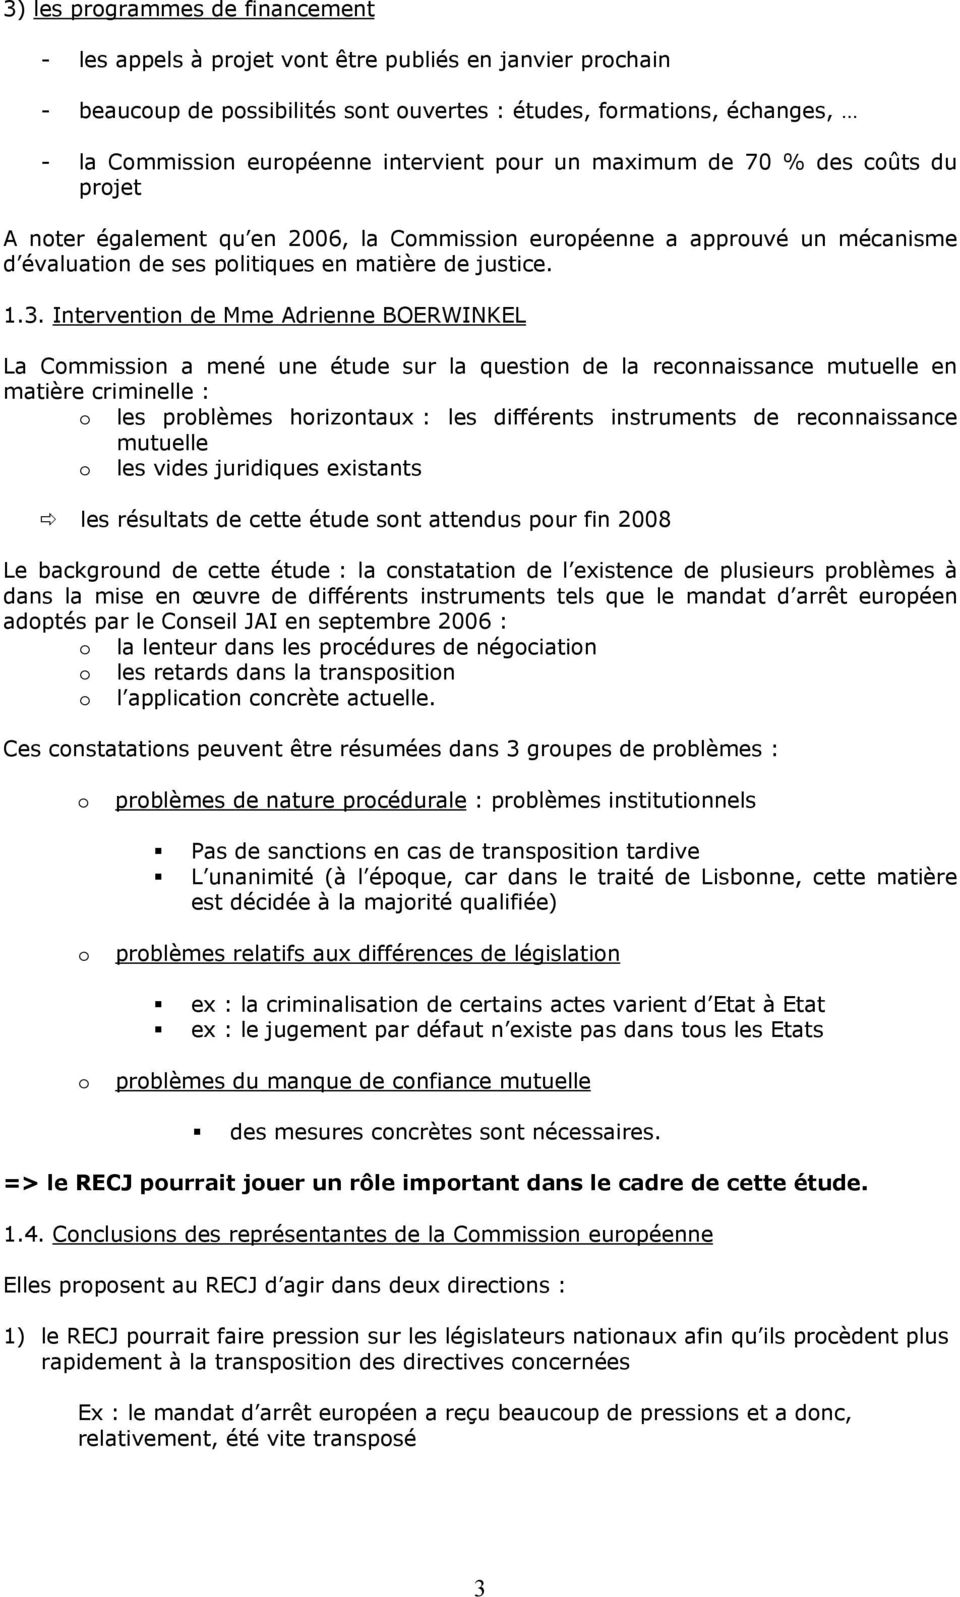 Intervention de Mme Adrienne BOERWINKEL La Commission a mené une étude sur la question de la reconnaissance mutuelle en matière criminelle : o les problèmes horizontaux : les différents instruments